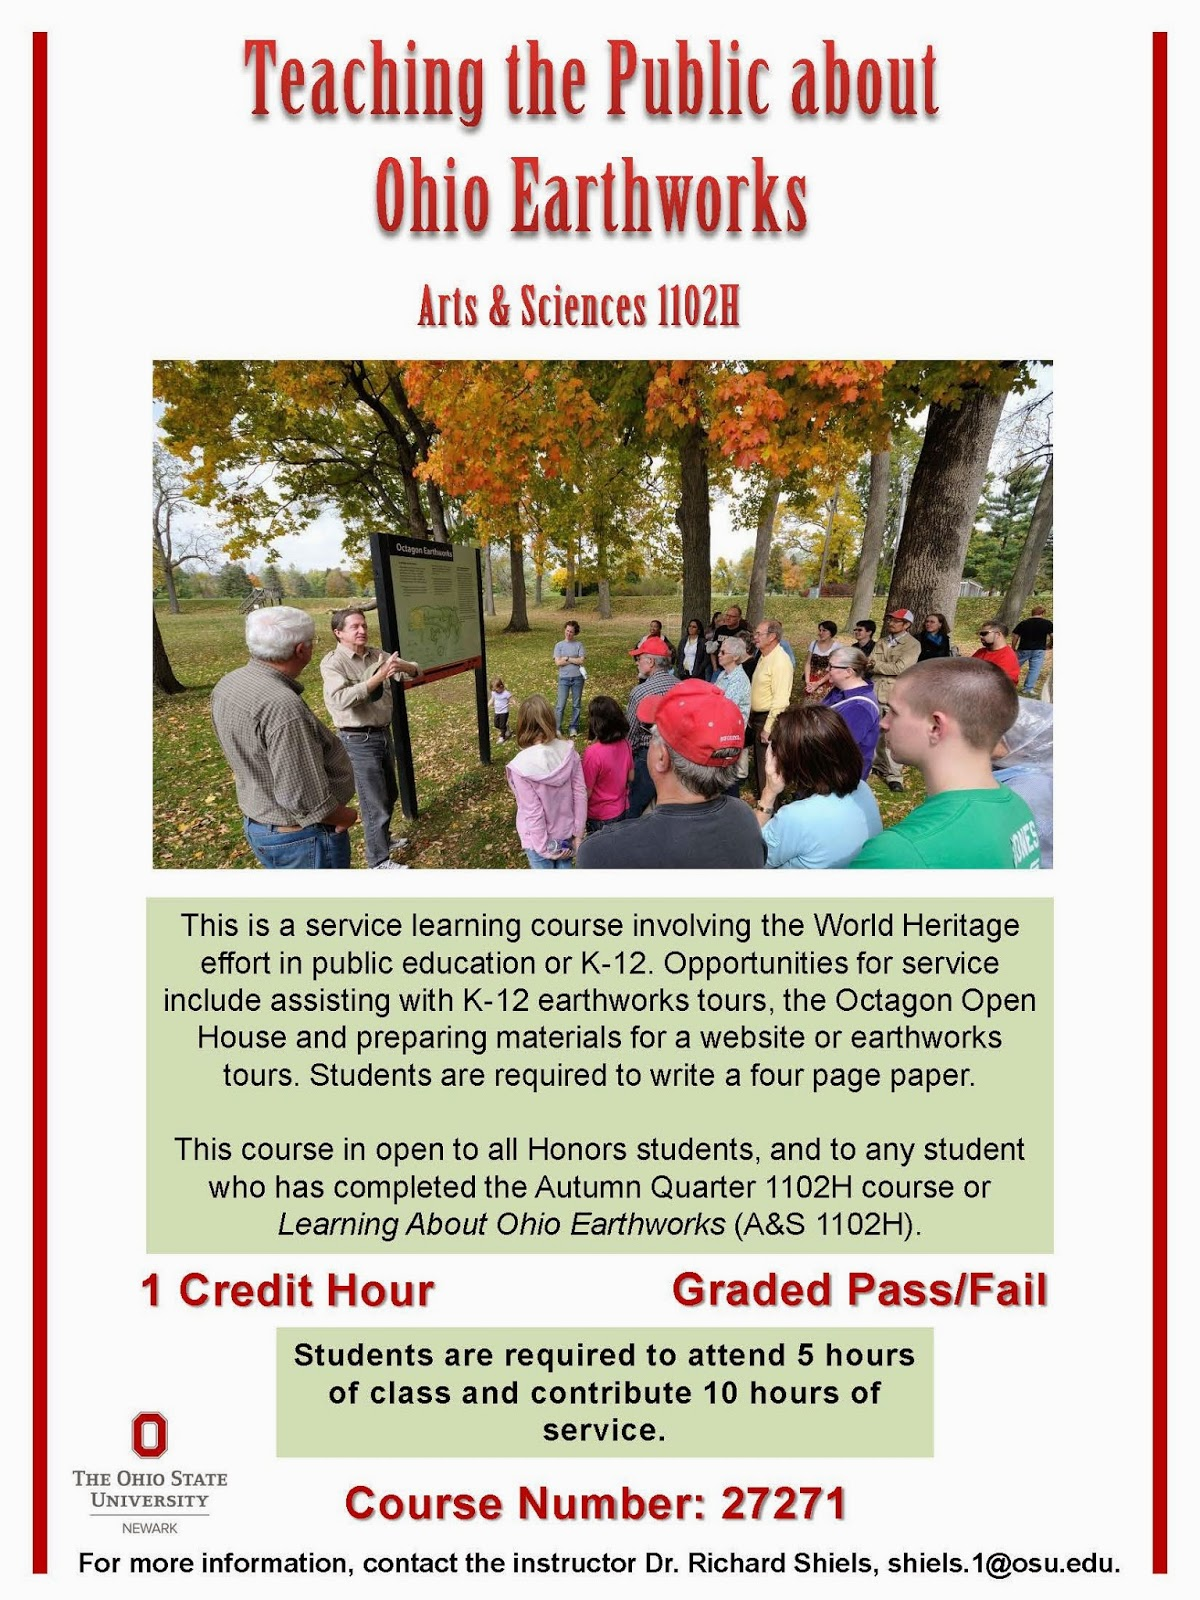 Teaching the Public about Ohio Earthworks Flyer PDF